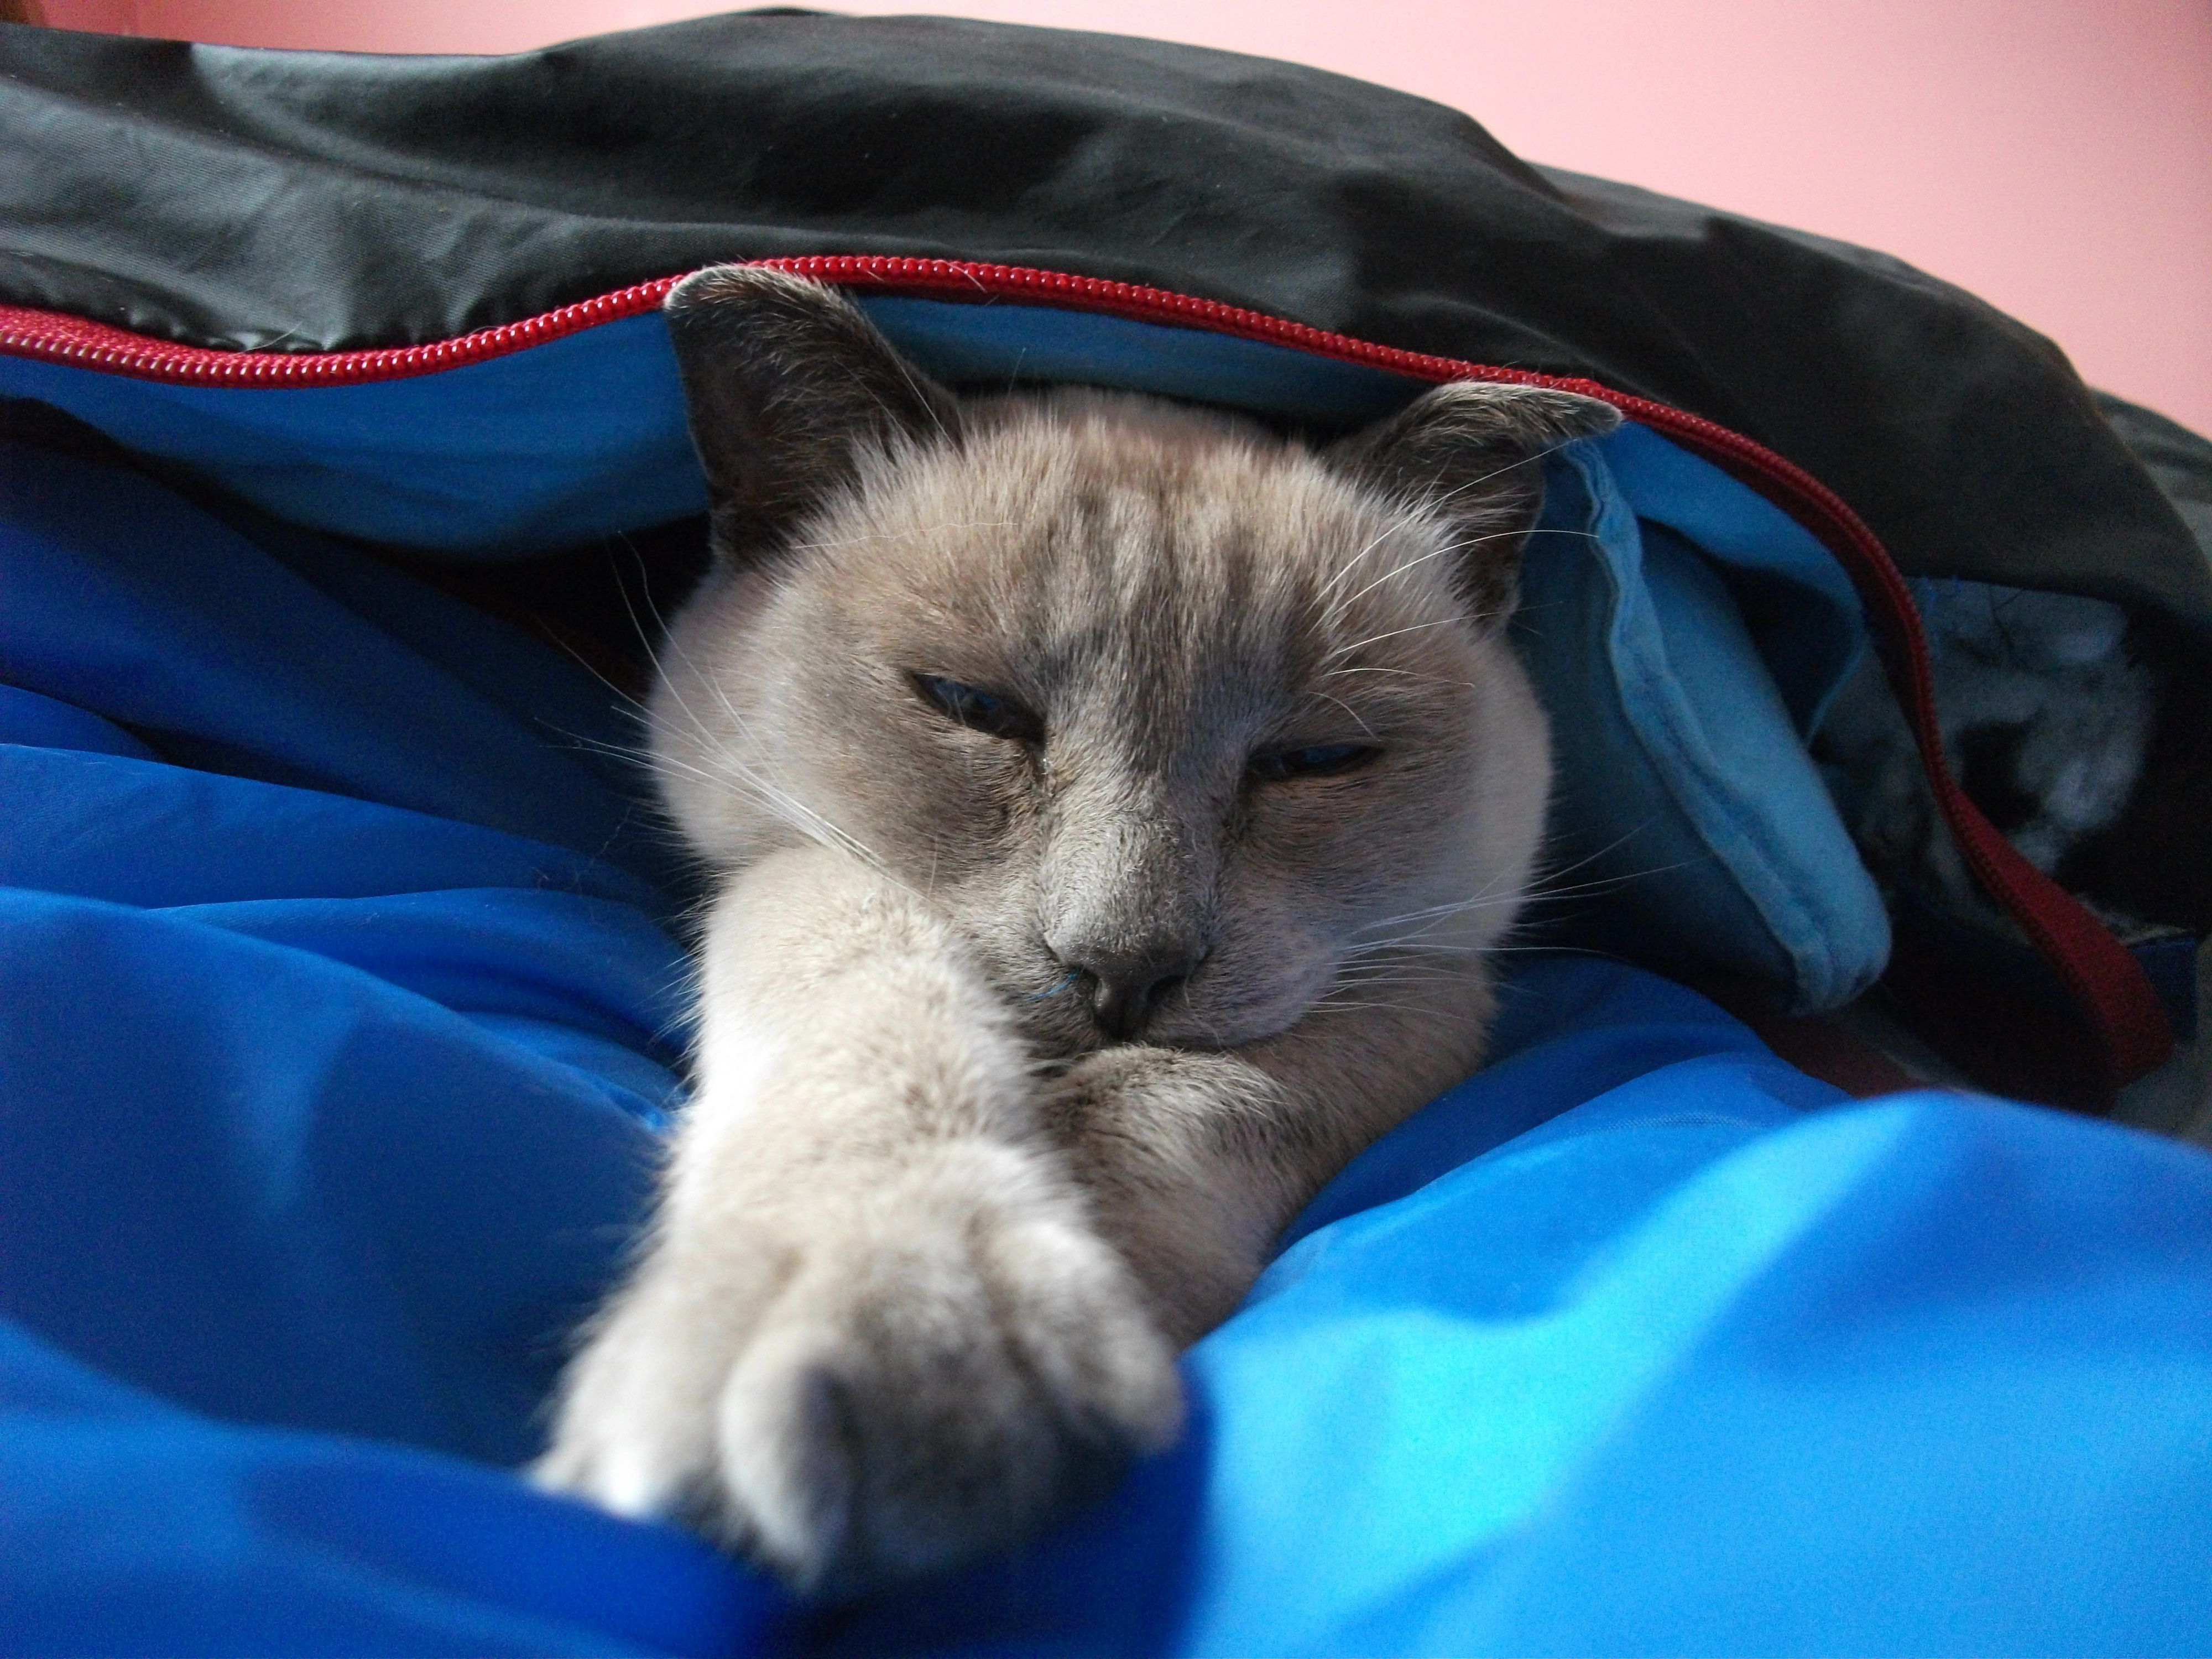 Our siamese cat Oiver. He has the gentlest personality